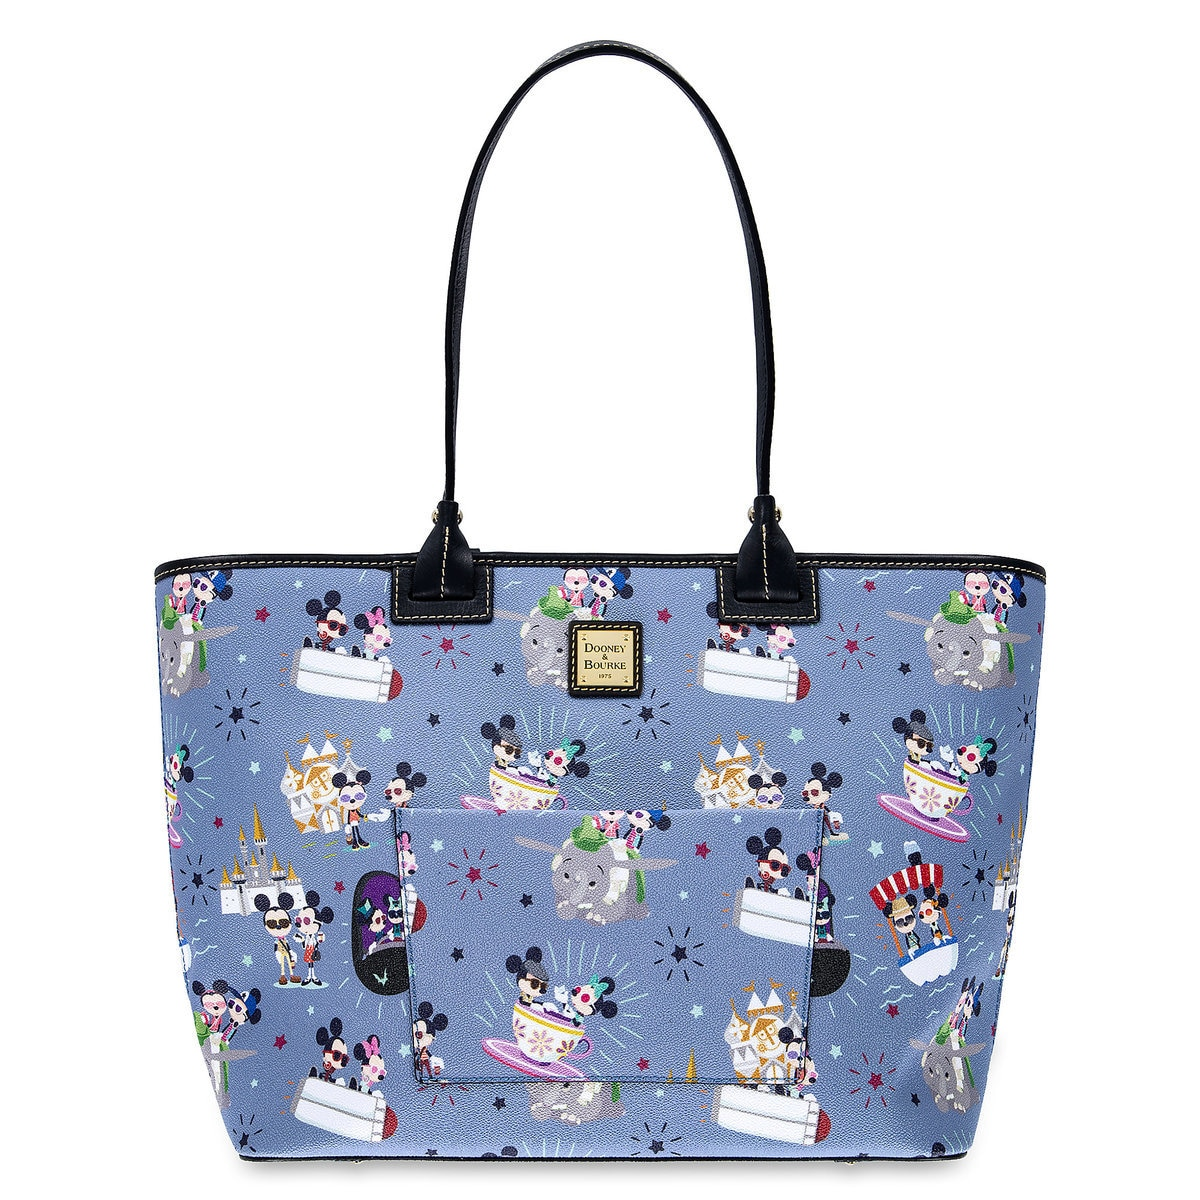 b044fc3221 Product Image of Mickey and Minnie Mouse Large Tote by Dooney   Bourke   1